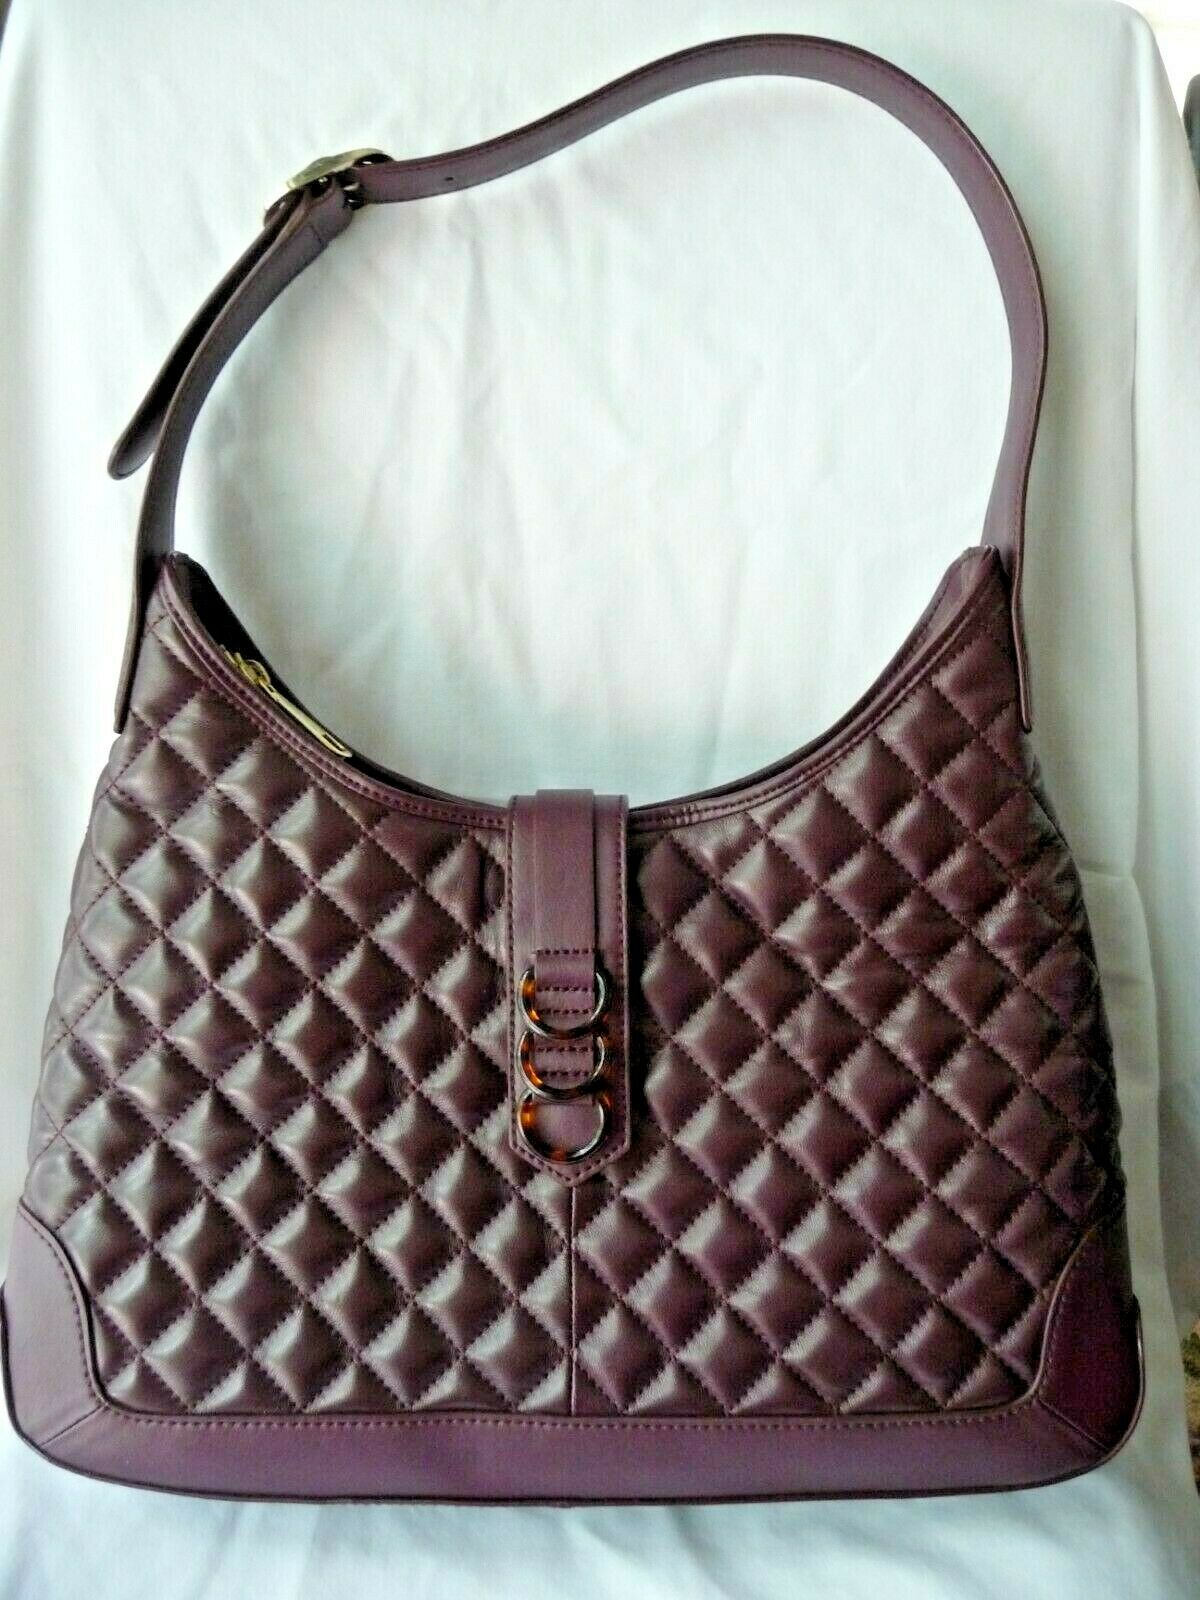 Talbots Purse Shoulder Bag Genuine Leather Maroon Quilted Tortoise Rings Front